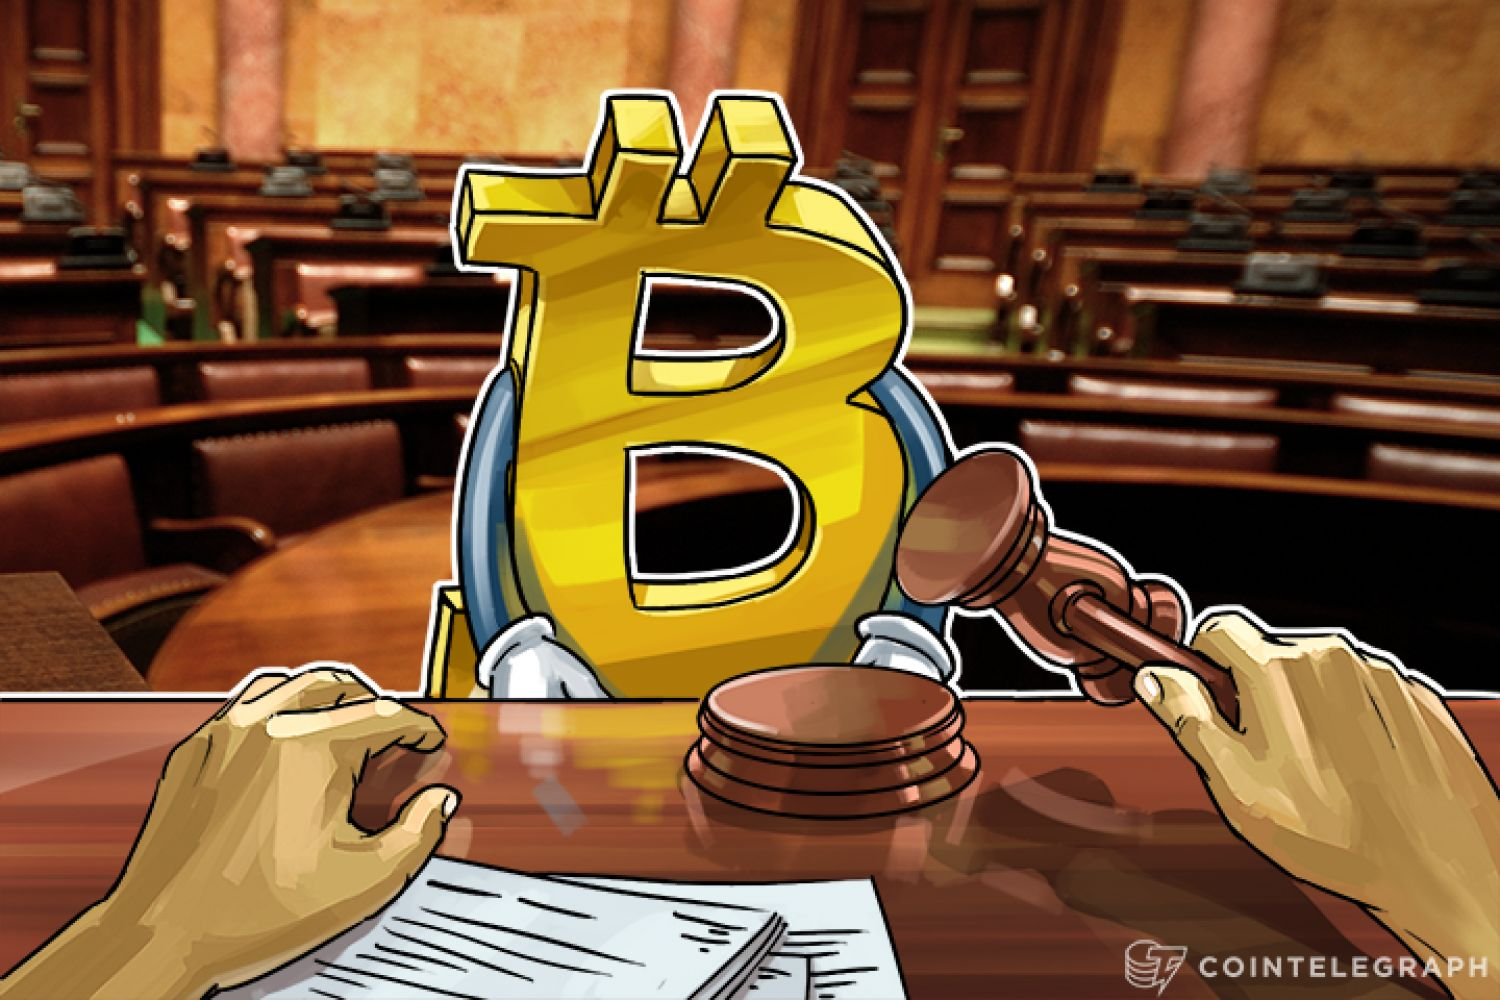 Bitcoin in the courtroom